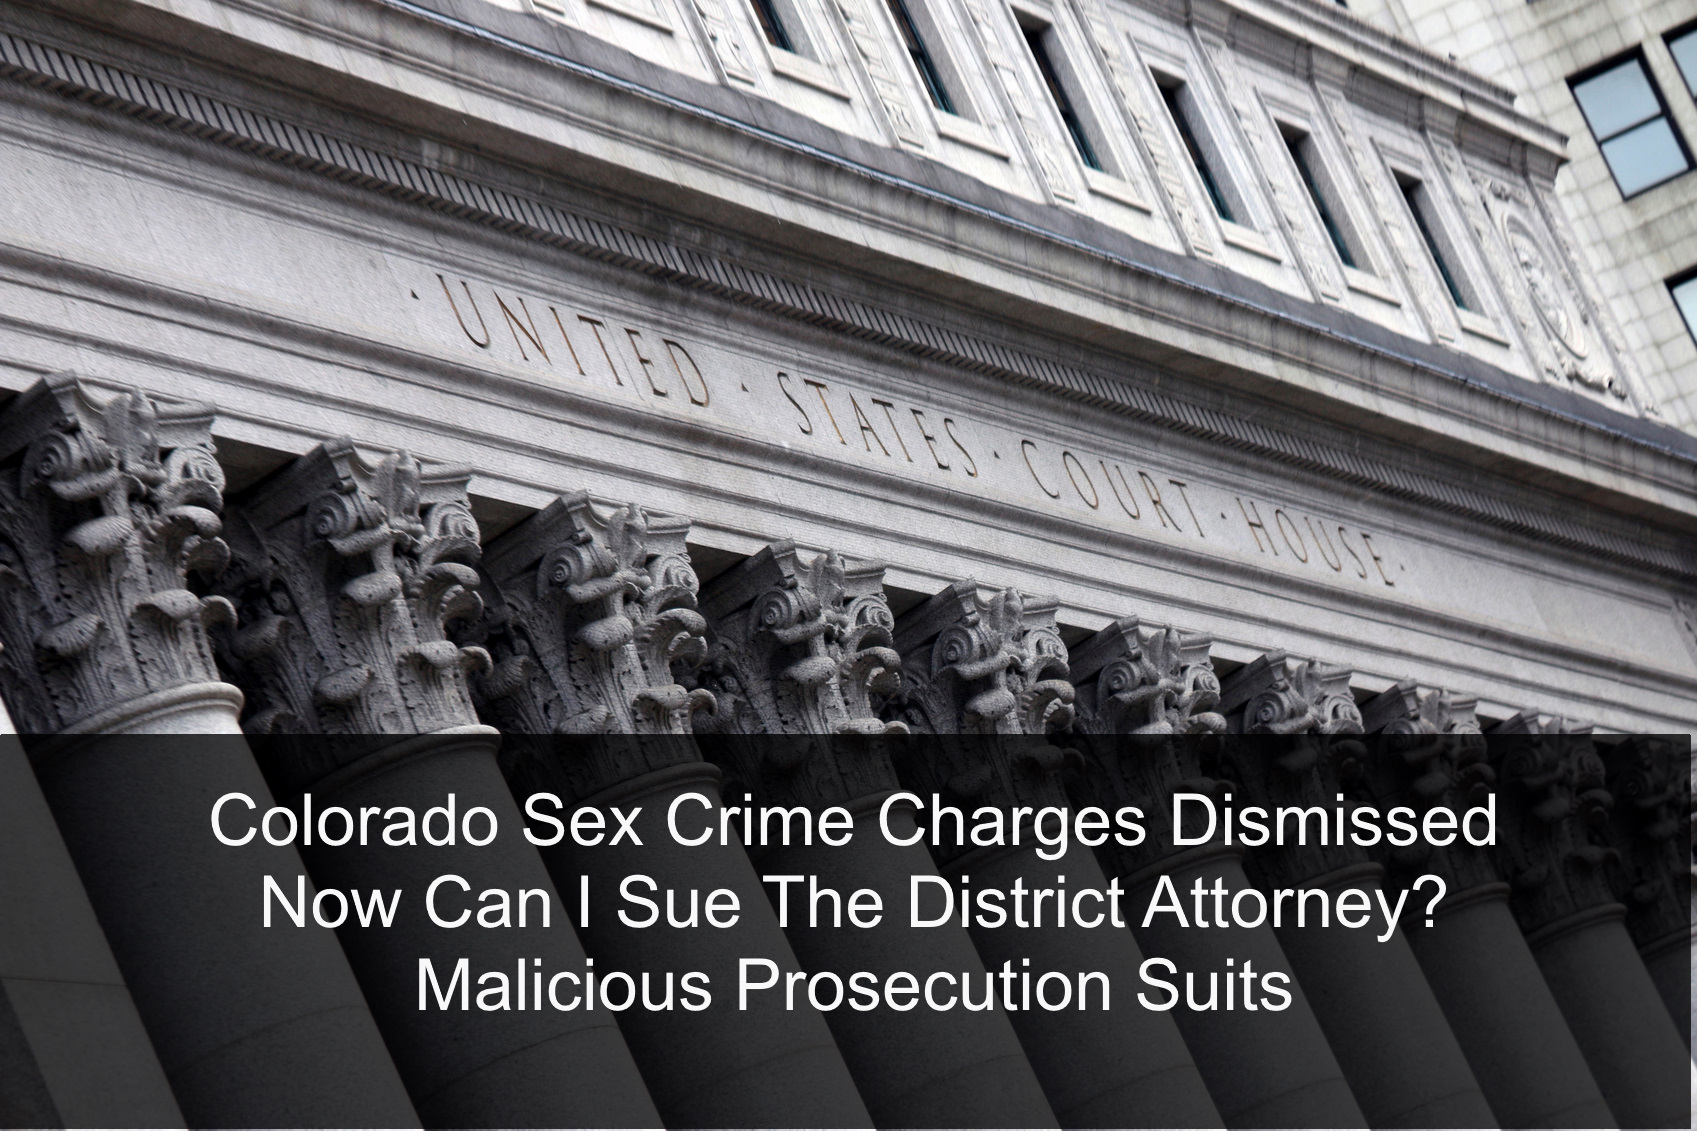 Colorado Sex Crime Charges Dismissed - Now Can I Sue The District Attorney? - Malicious Prosecution Suits